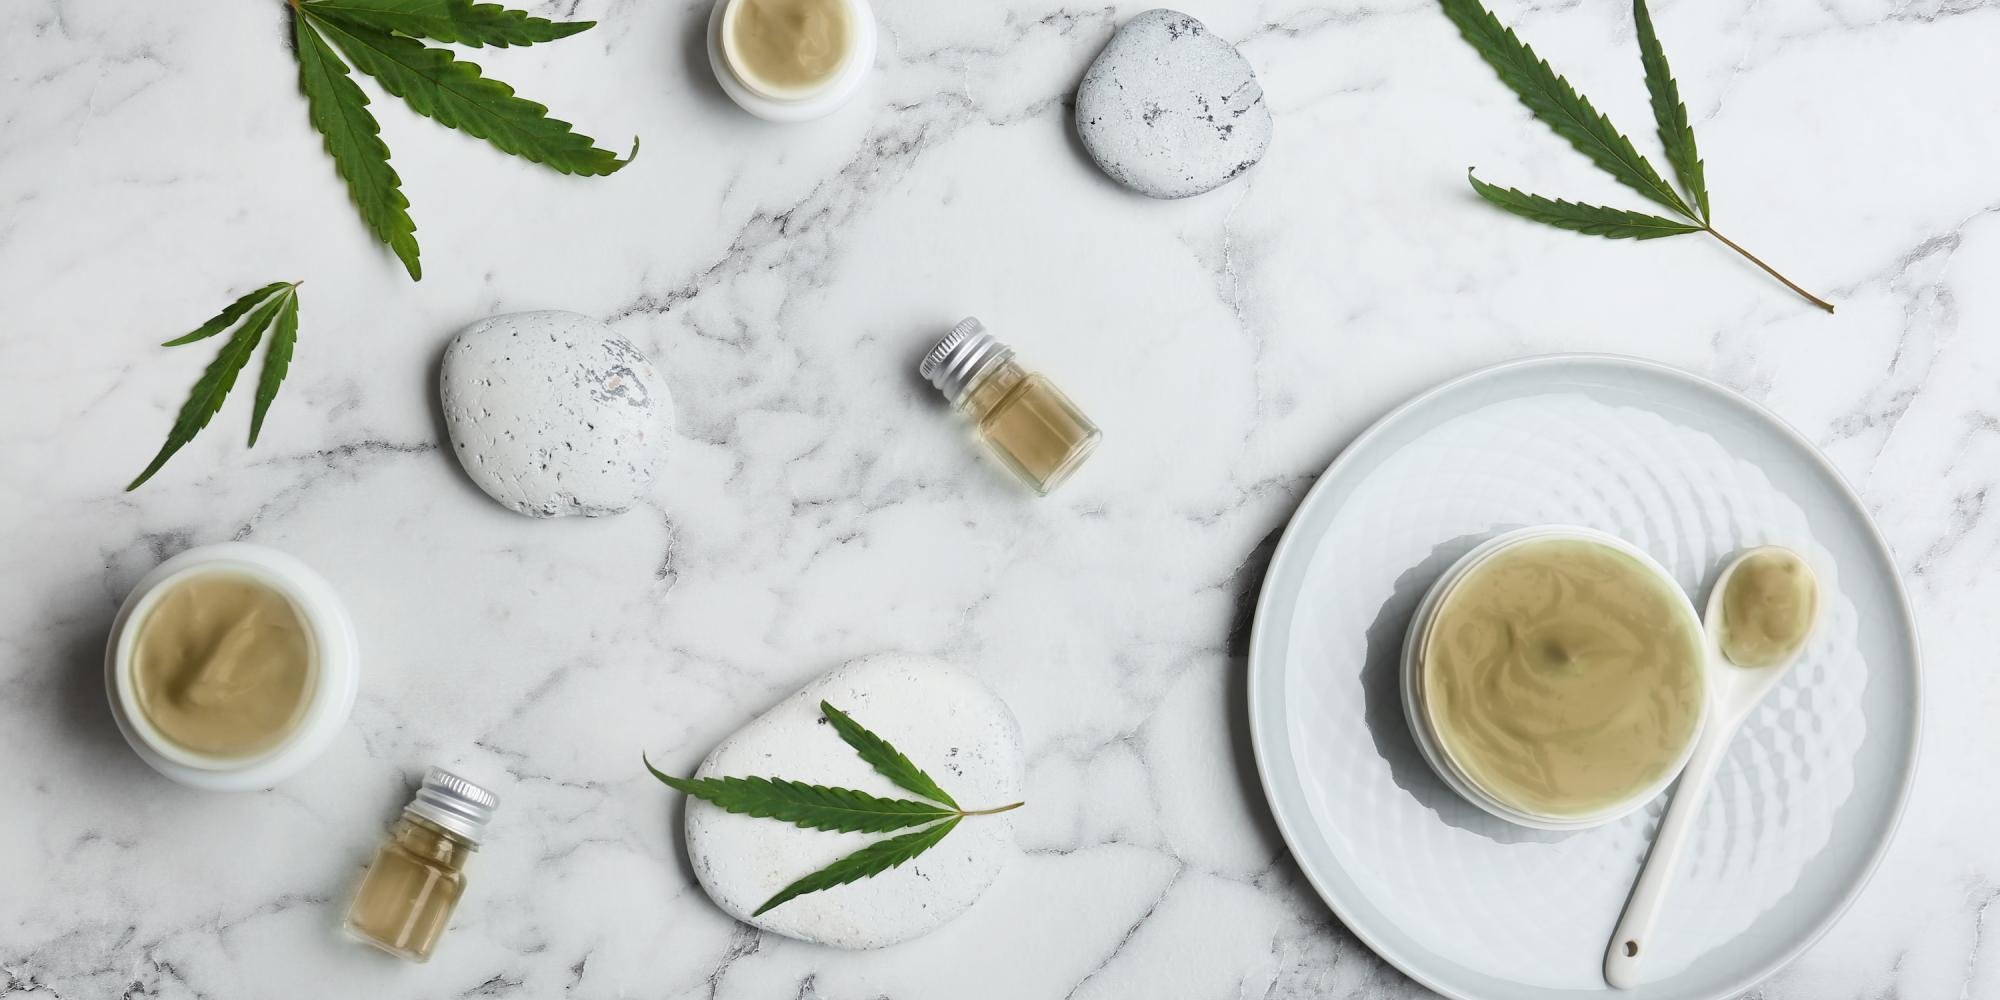 Weedwashing: How Brands Are Trying To Cash In On Beauty's Biggest Trend